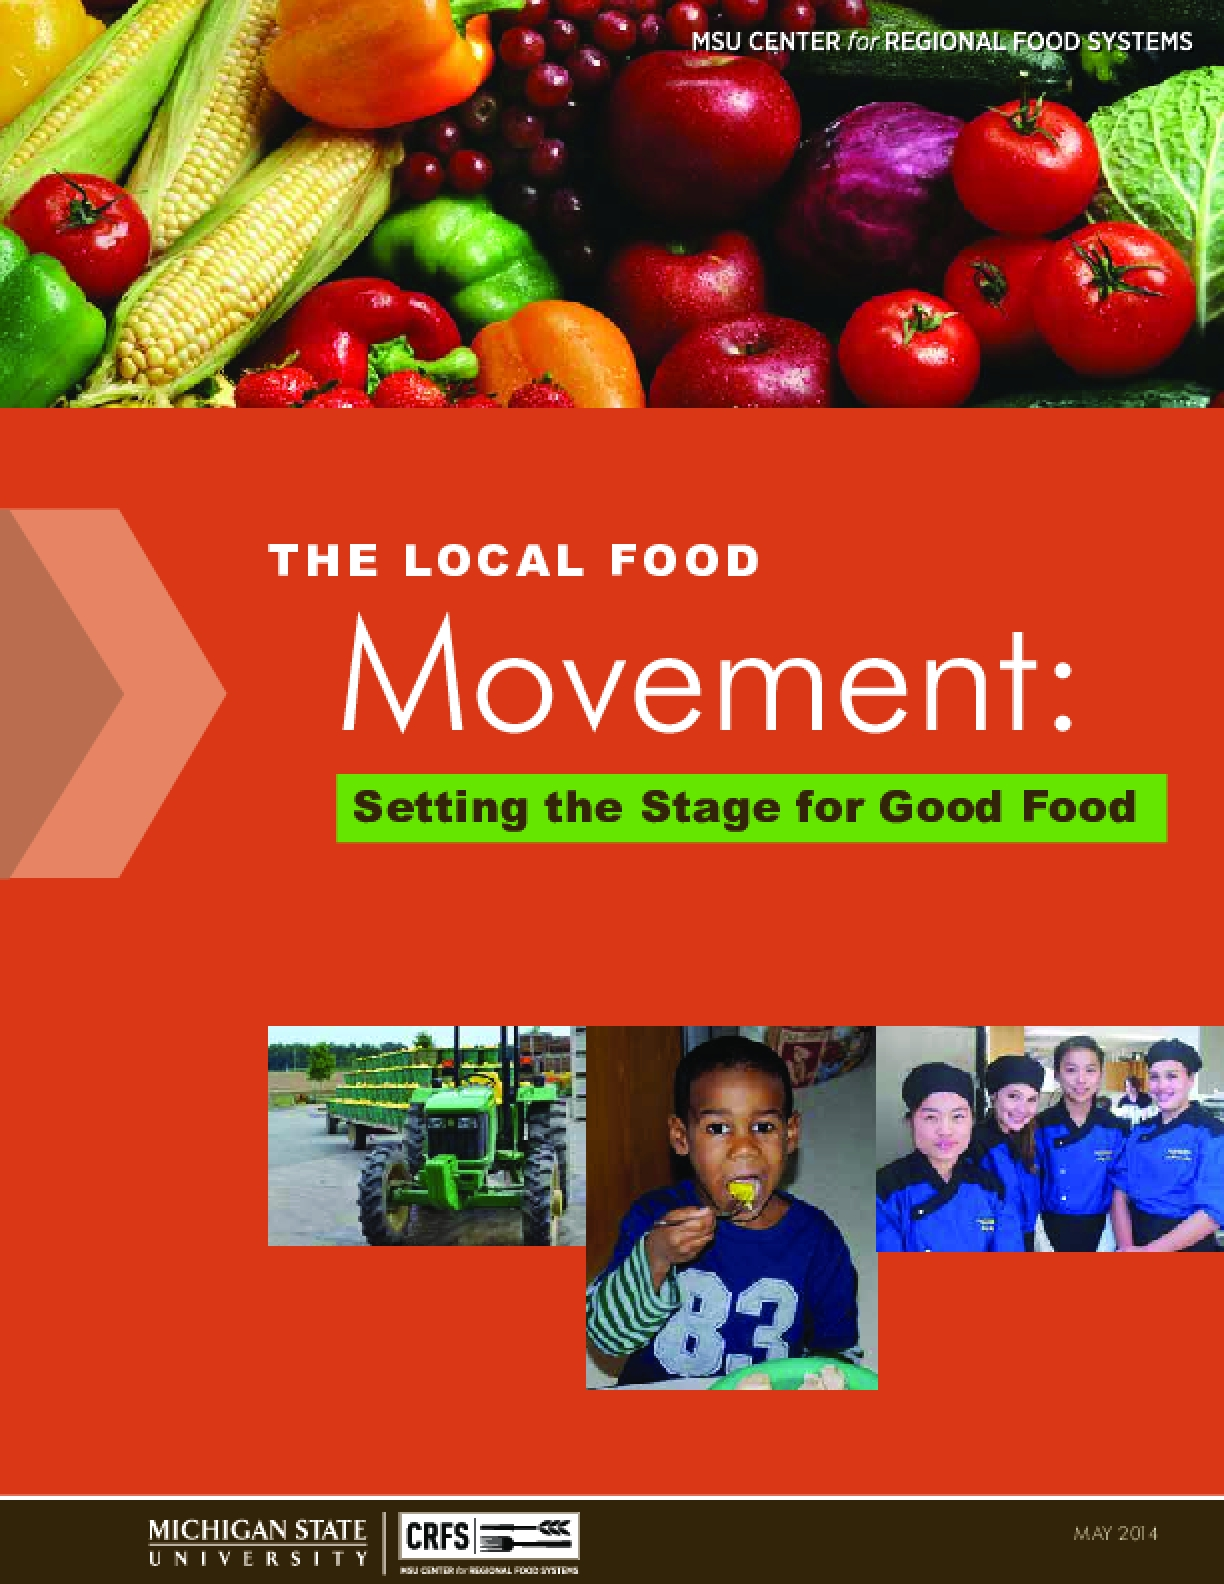 The Local Food Movement: Setting the Stage for Good Food